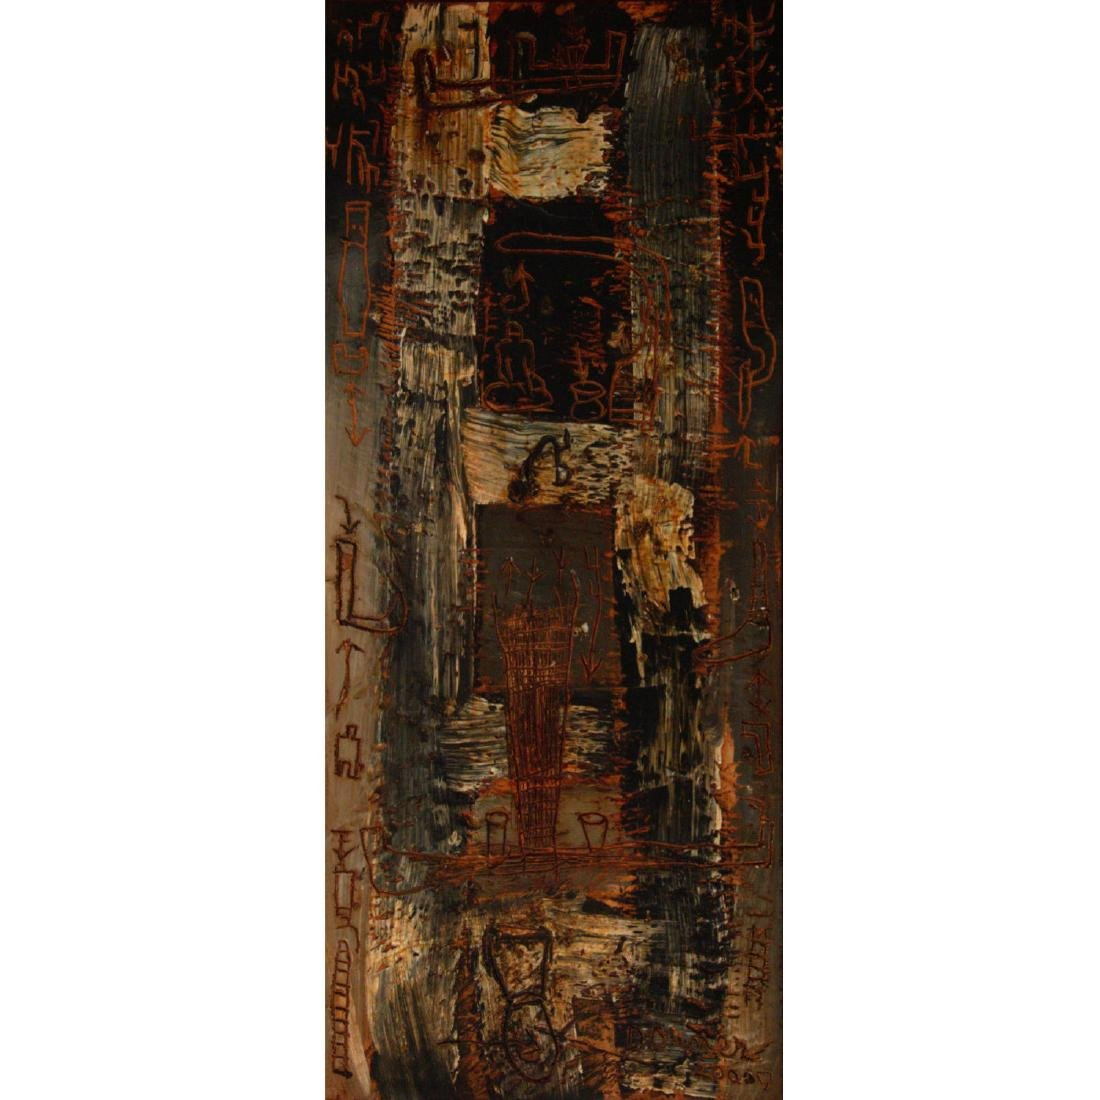 Diego Donner - Abstract, Mixed Media on Masonite, 2000.